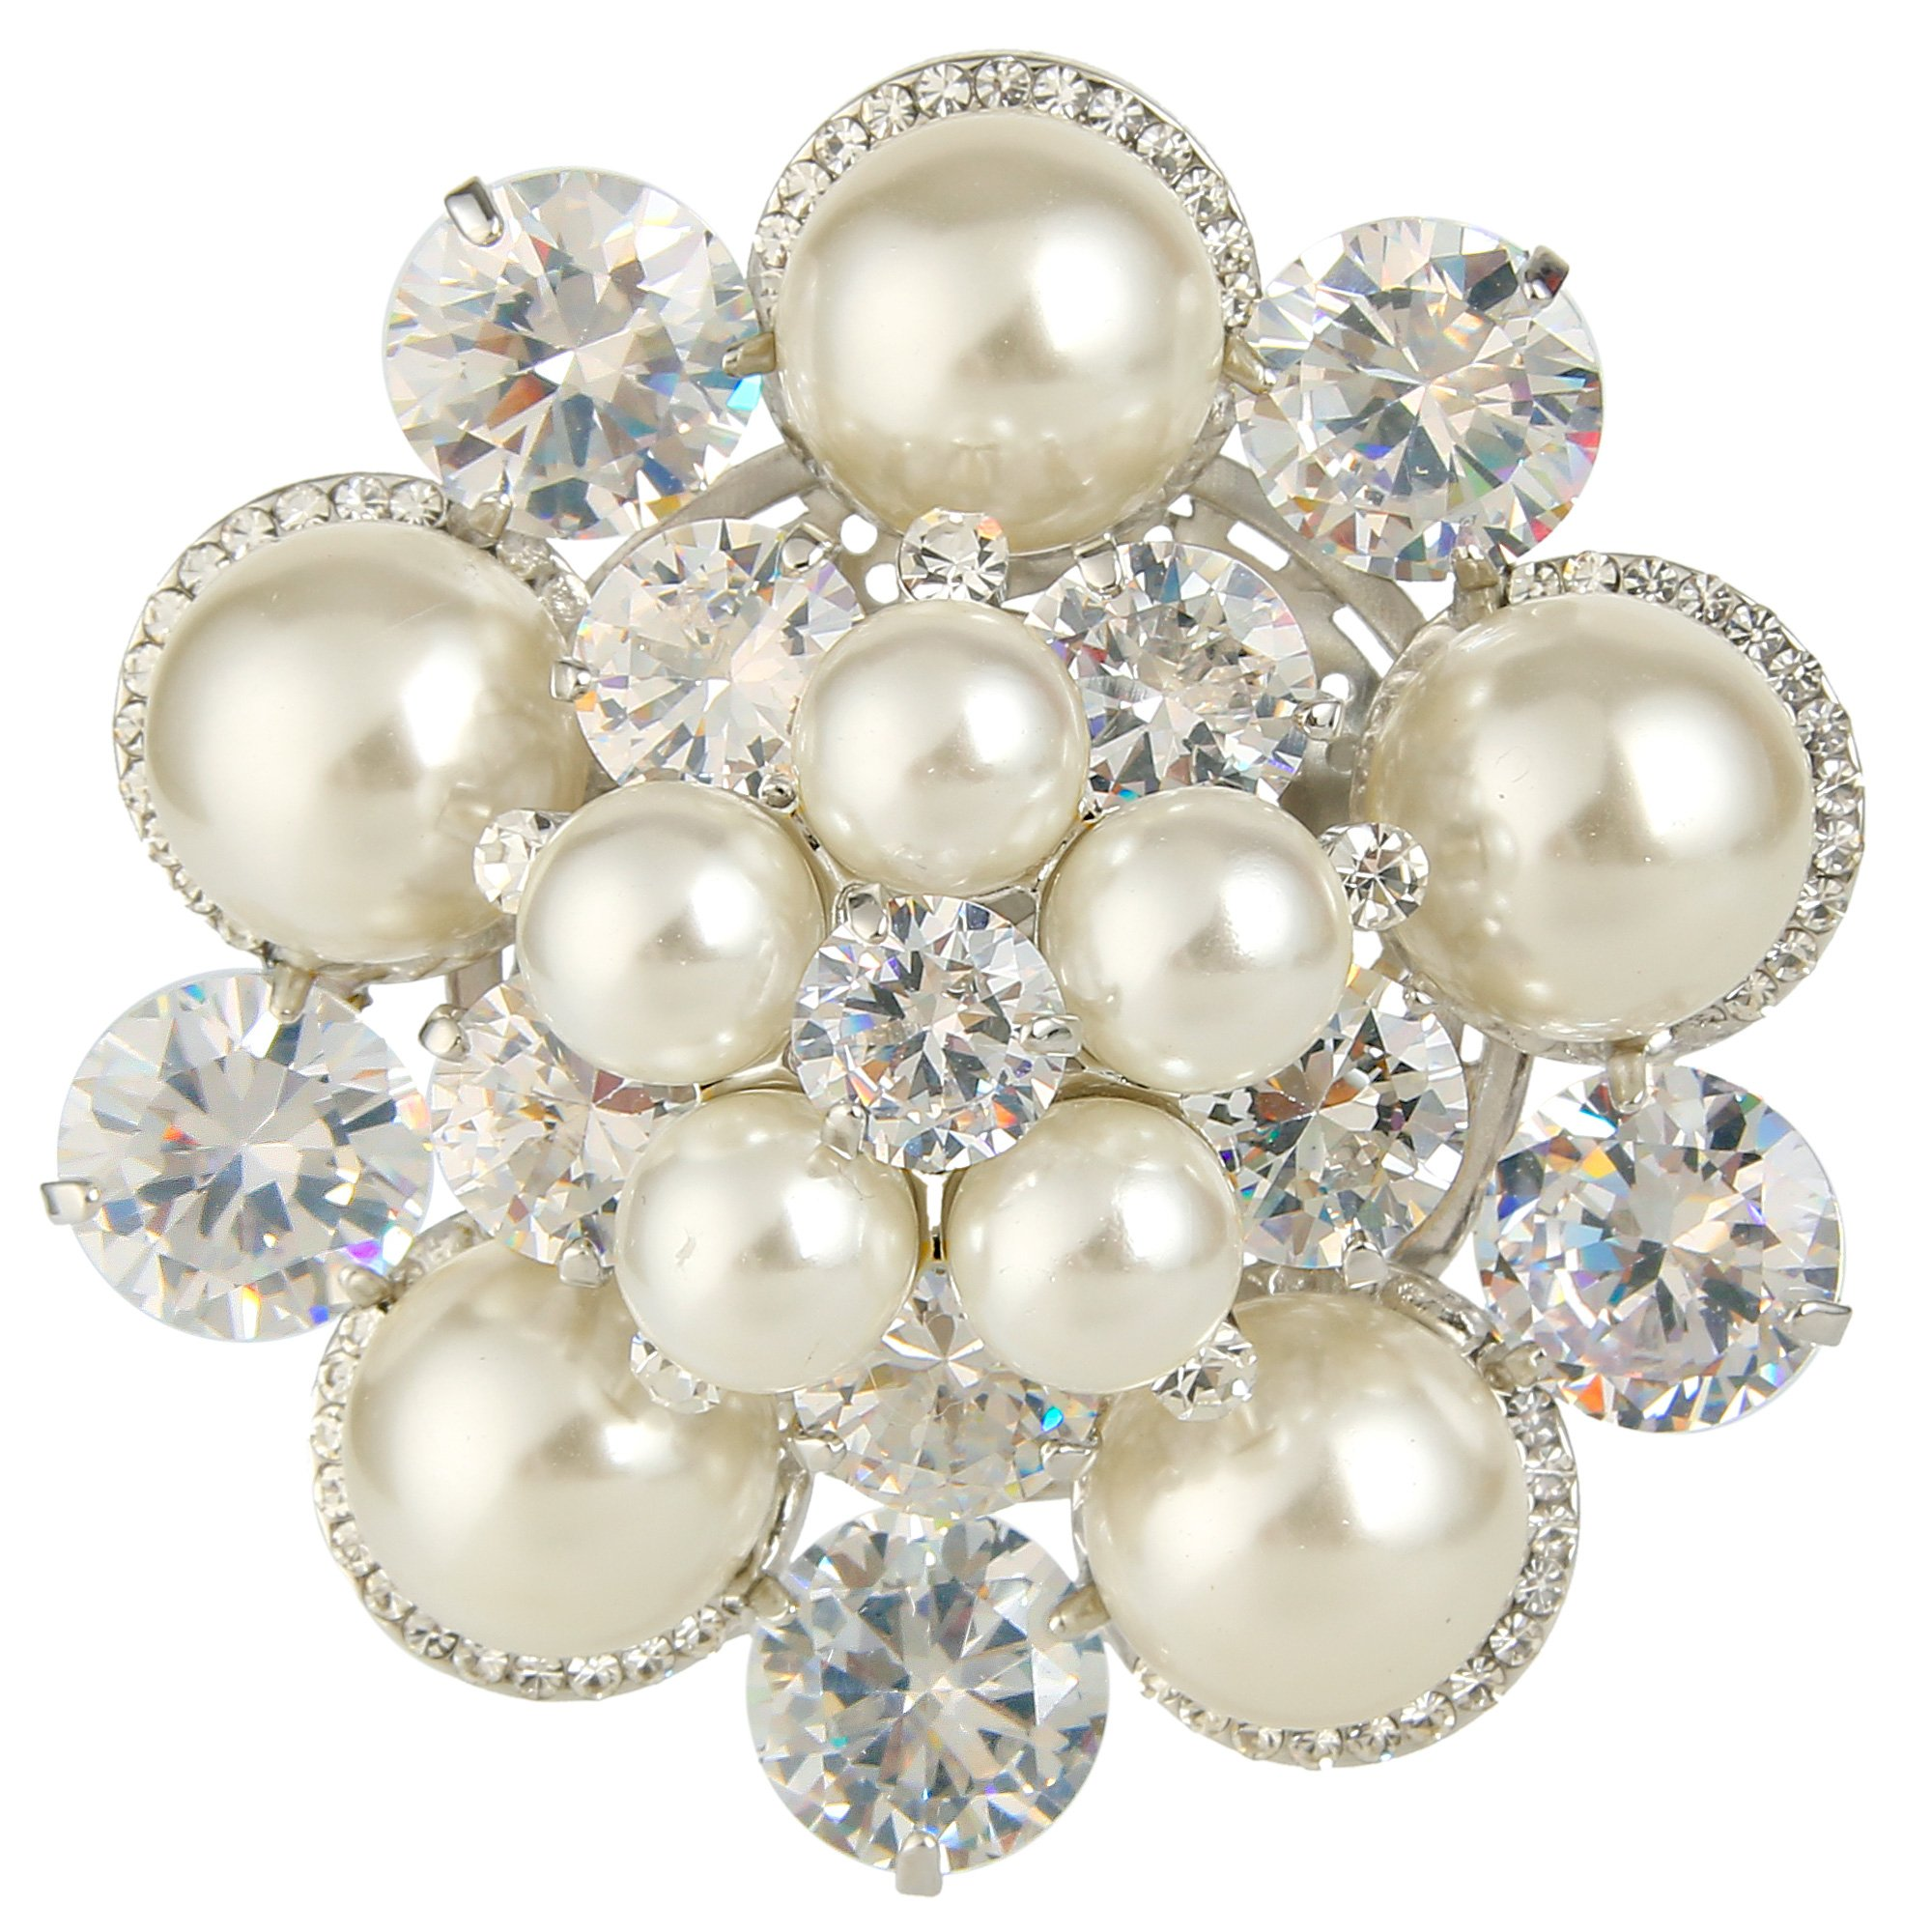 EleQueen Women's Silver-tone Cubic Zirconia Cream Simulated Pearl Winter Snowflake Christmas Brooch Clear